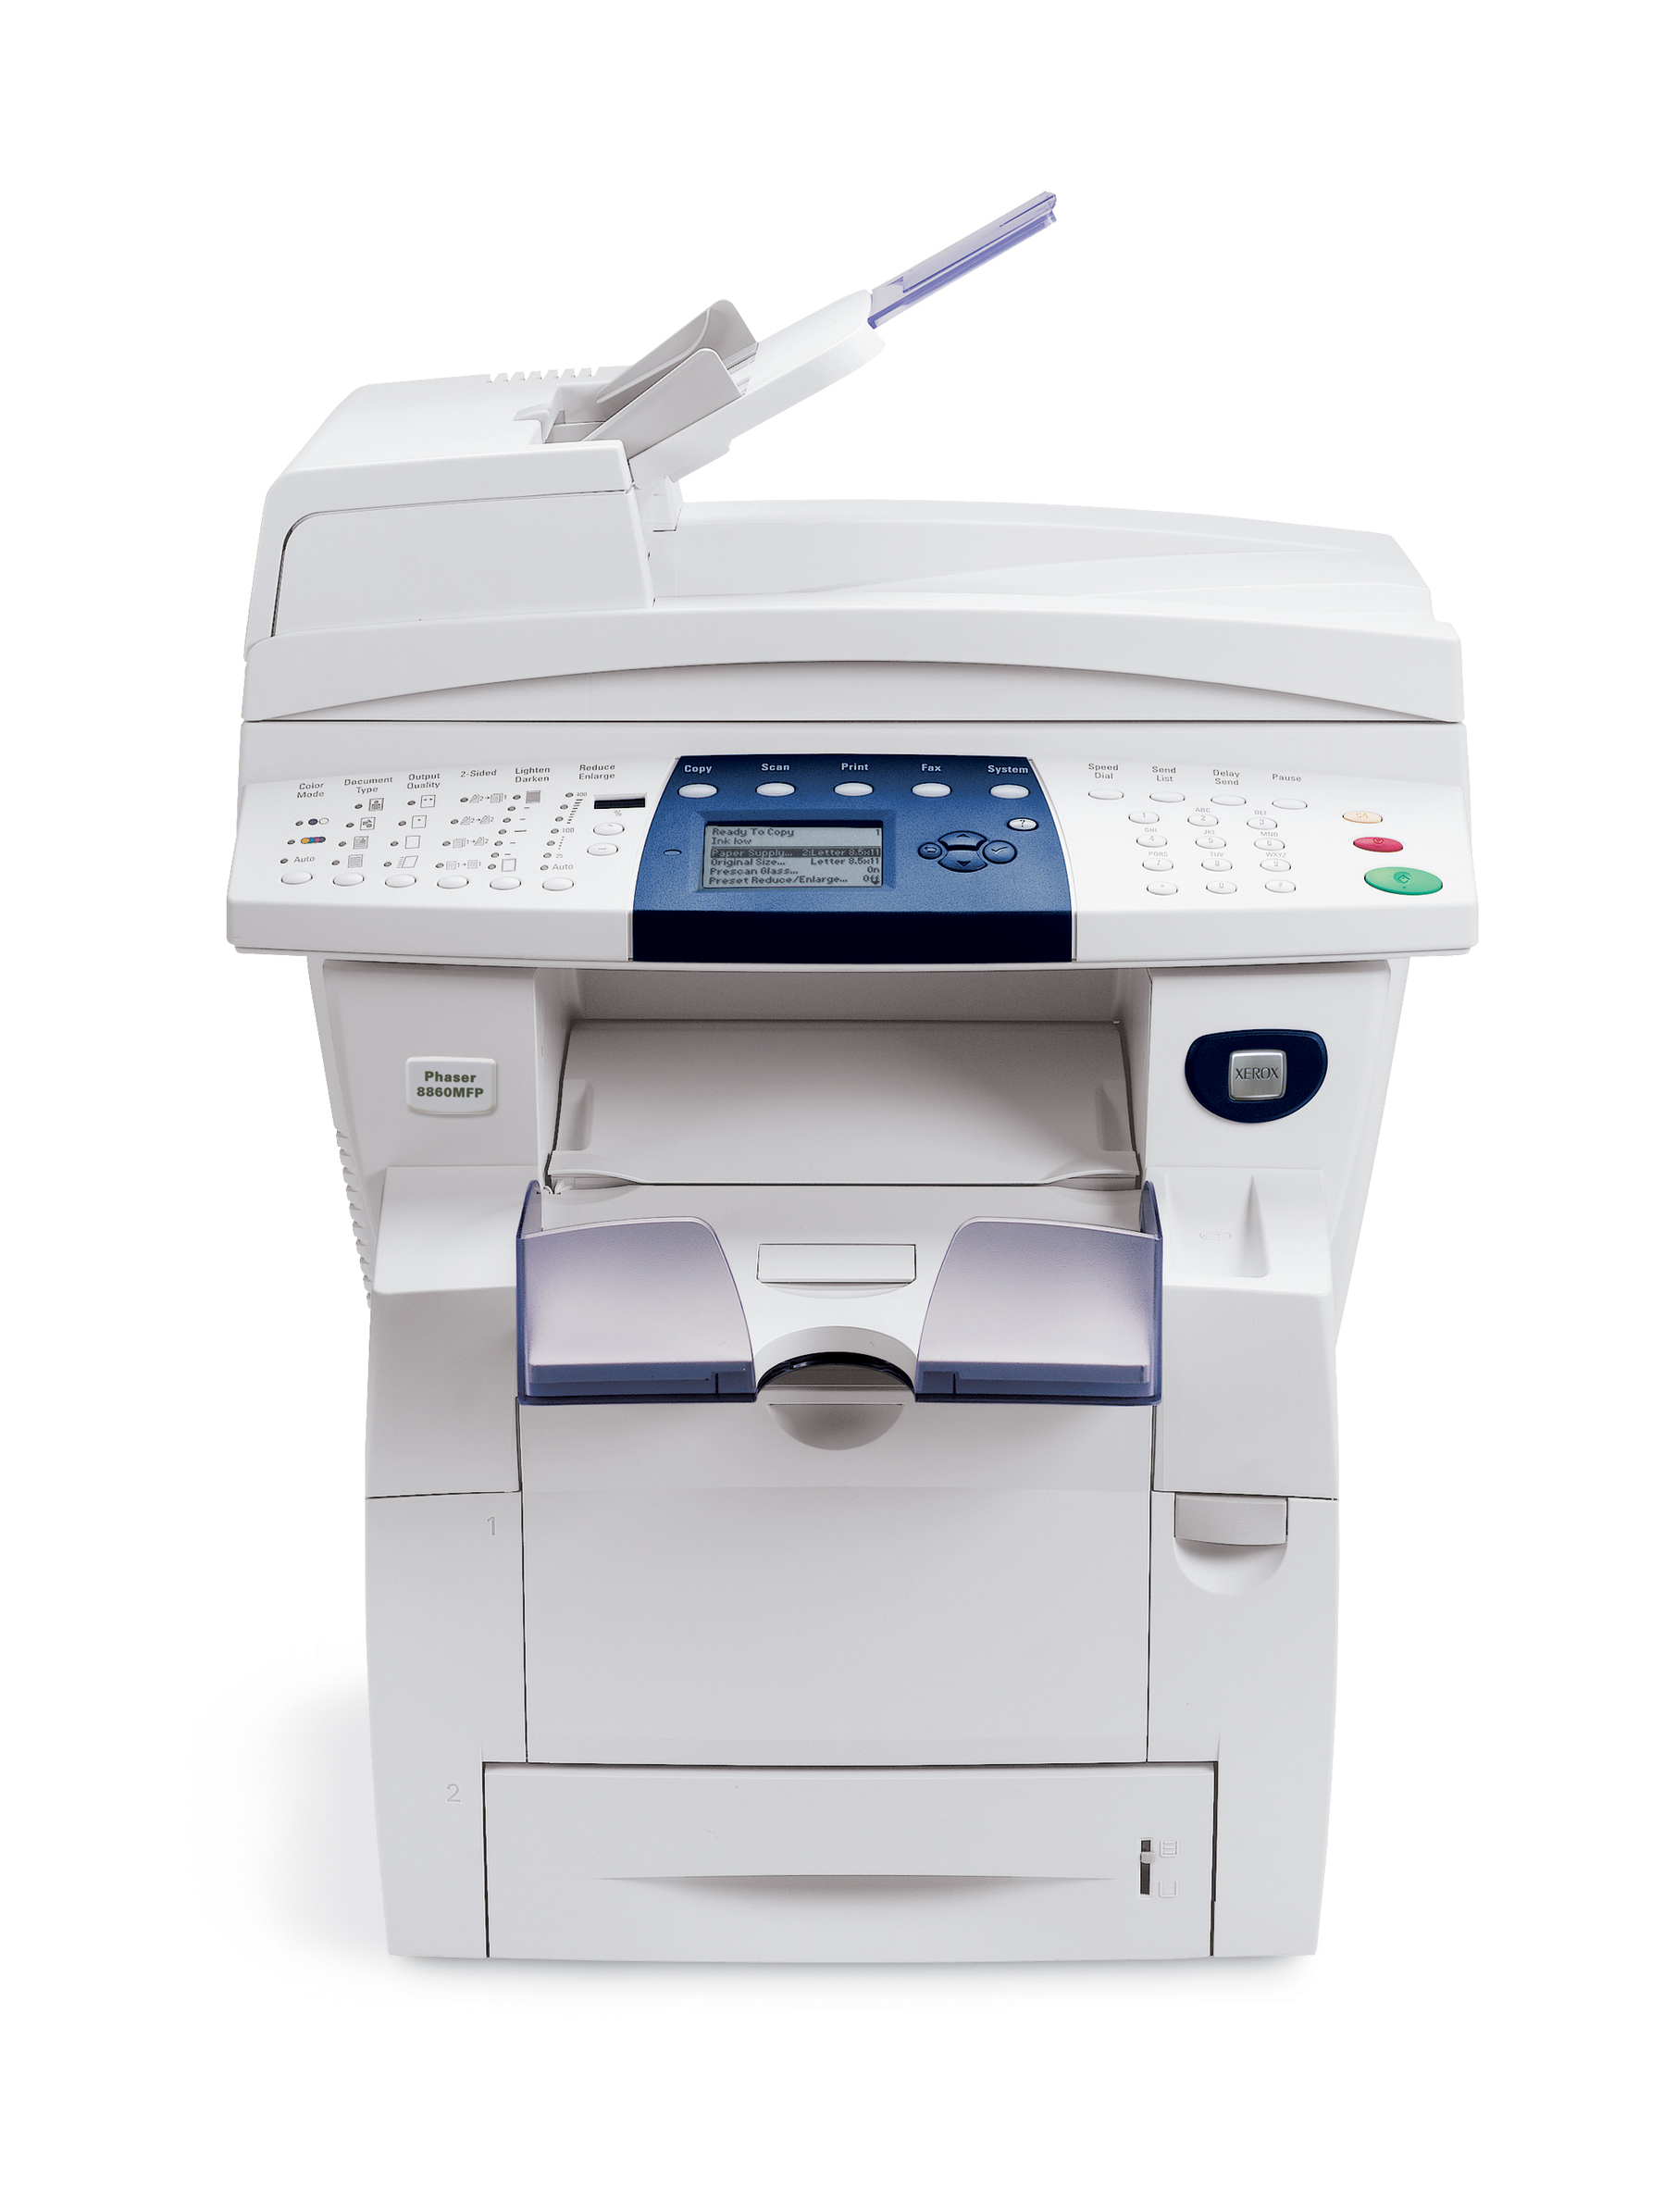 Xerox Phaser 8860mfp A4 USB Network Multifunction Colour Wax Printer 8860MFP_ADM - Refurbished